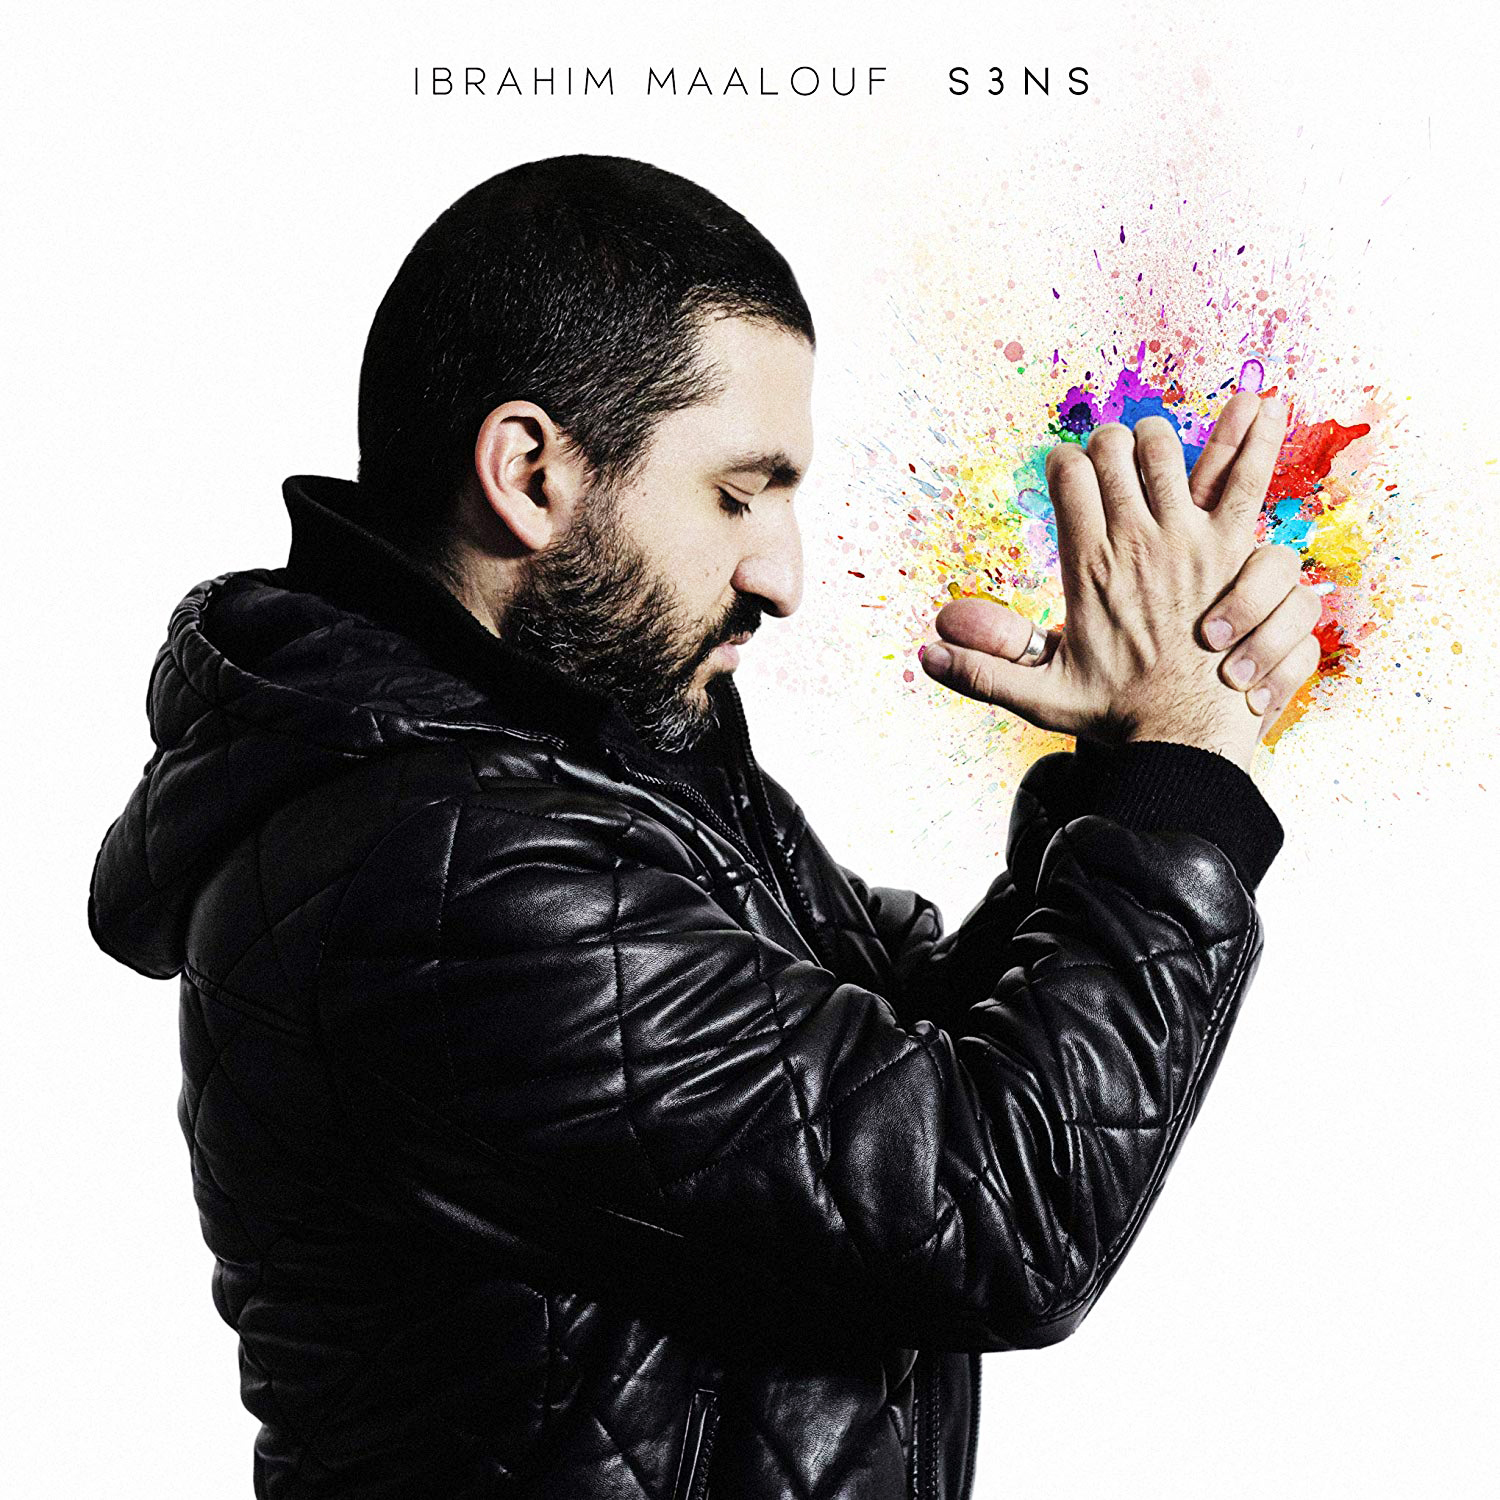 S3NS, Mister Ibe, d'Ibrahim Maalouf, sorti le 27 septembre.